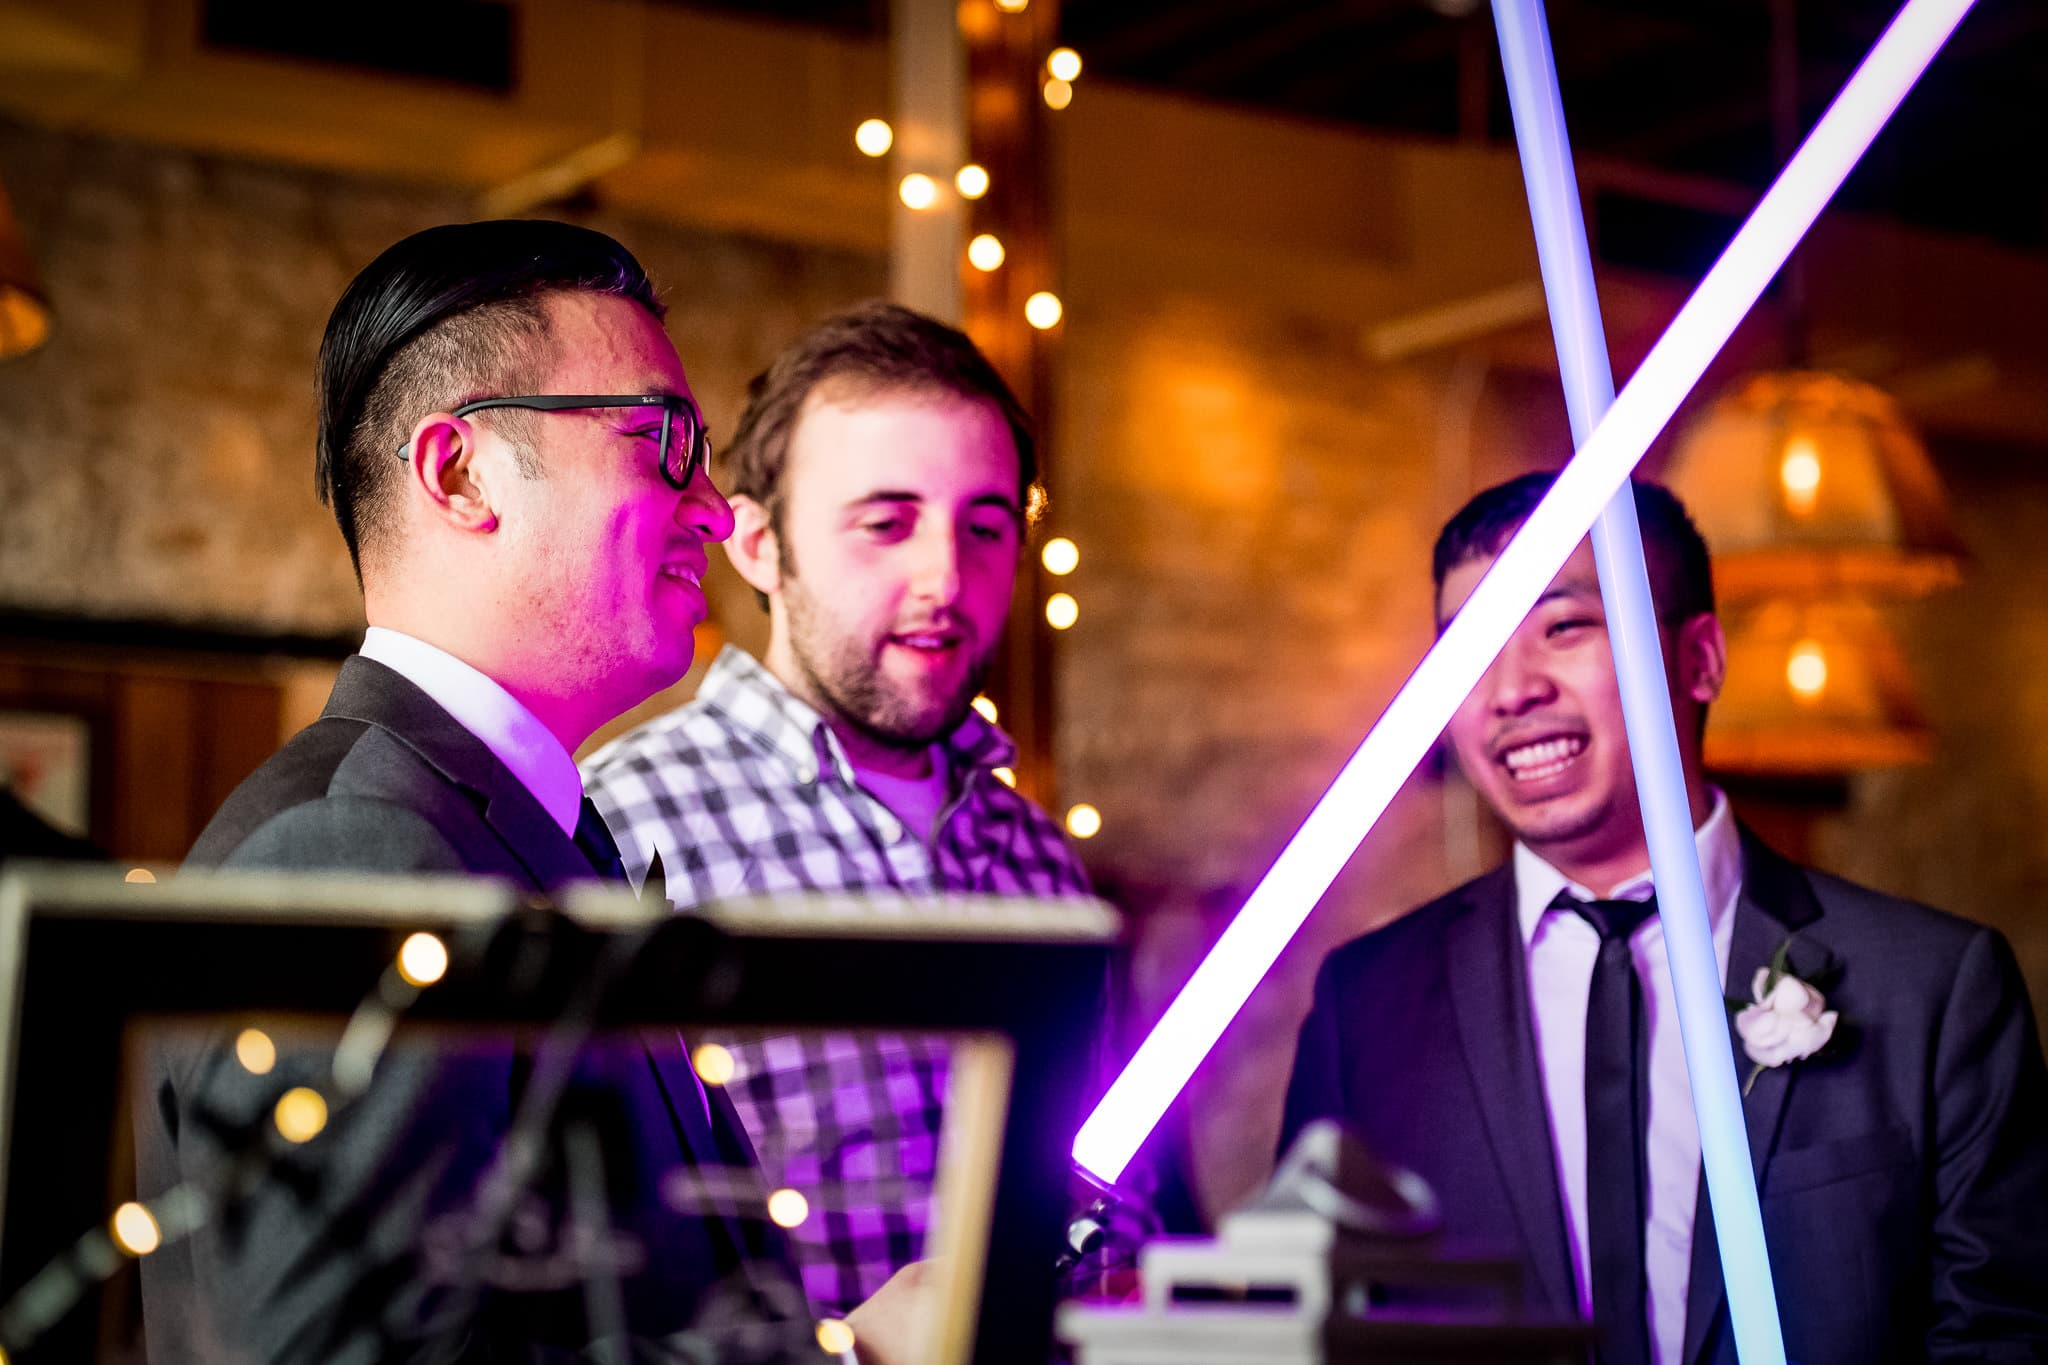 Star Wars Light Saber battle during the wedding reception in the River Room at Aster Cafe 5